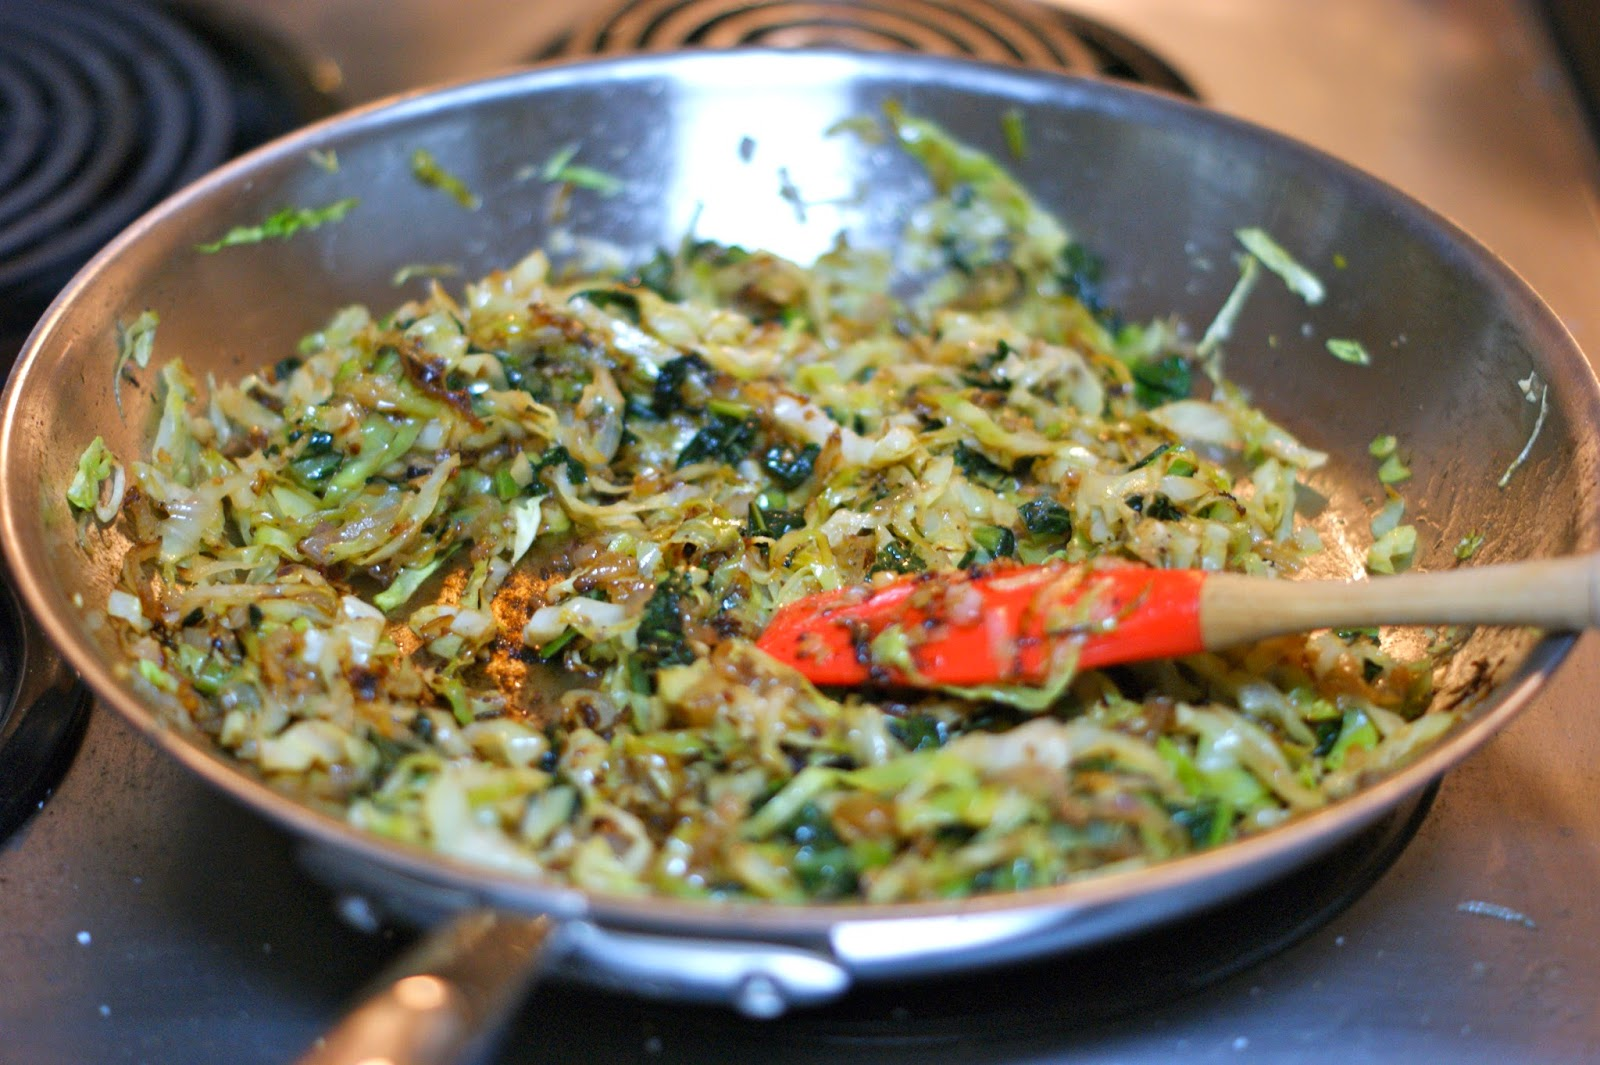 ... Frue: Tasty Thursday: Sauteed Cabbage and Kale with Garlic and Shallot